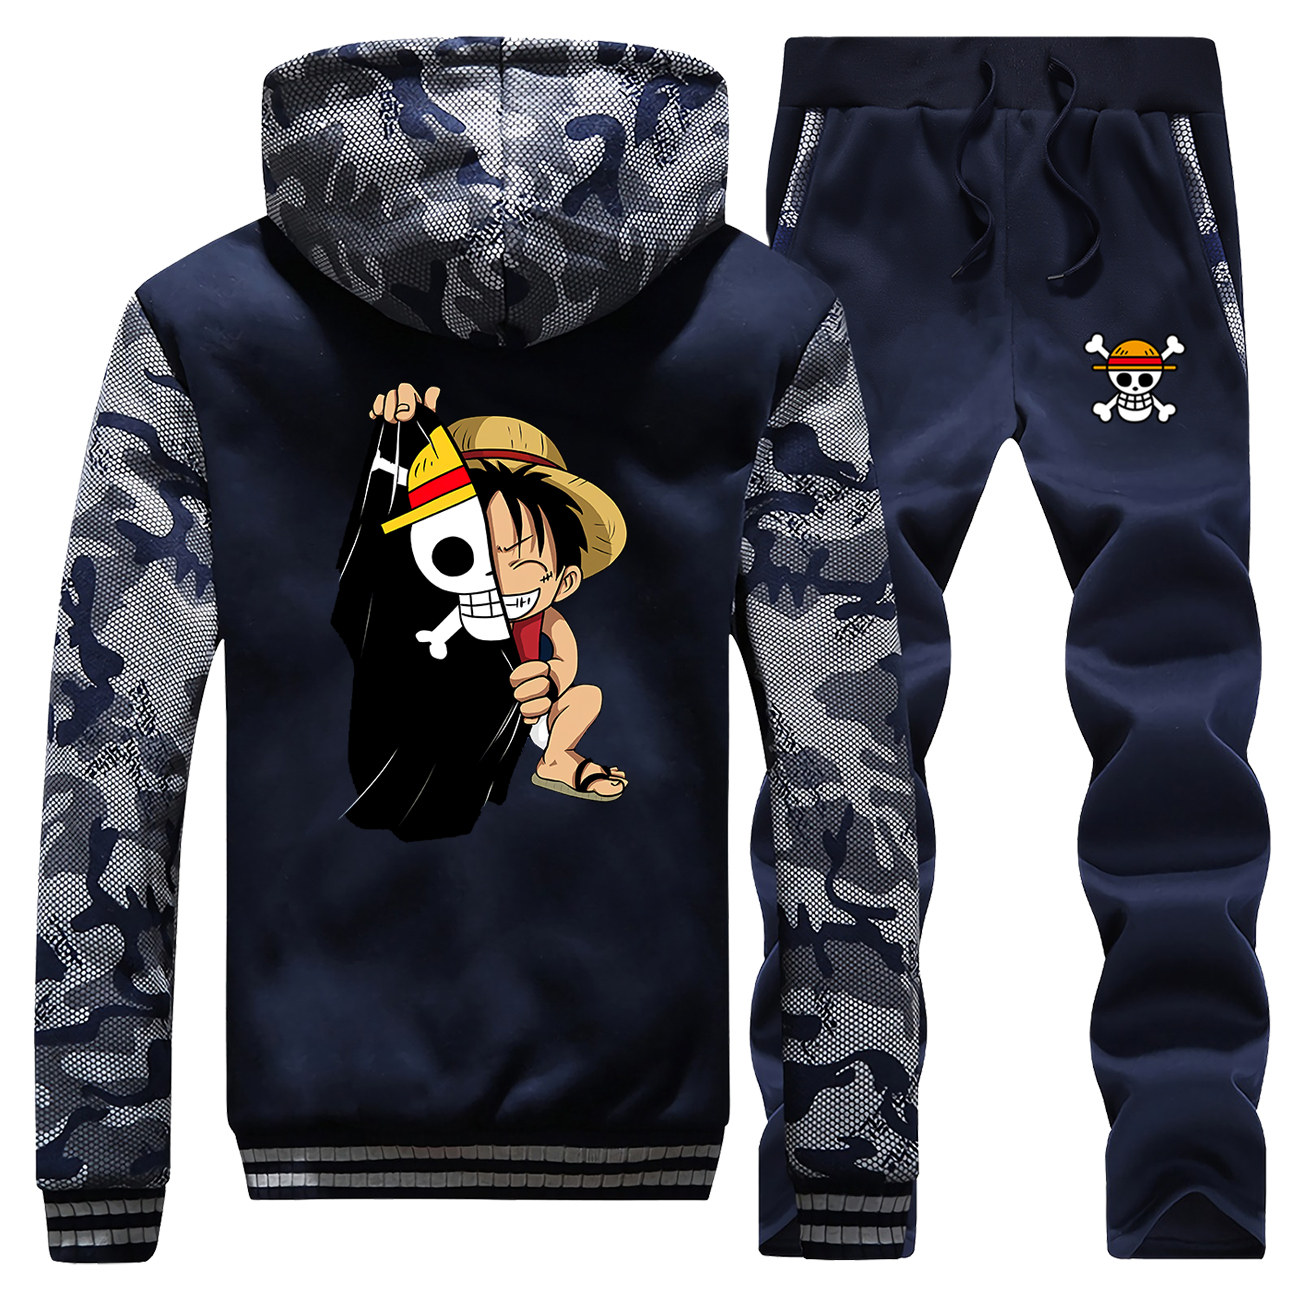 Sweatshirts Winter 2019 Hooded Mens Raglan Camouflage Luffy Cartoon Coat Thick Suit One Piece Jacket Zipper+Pants 2 Piece Set